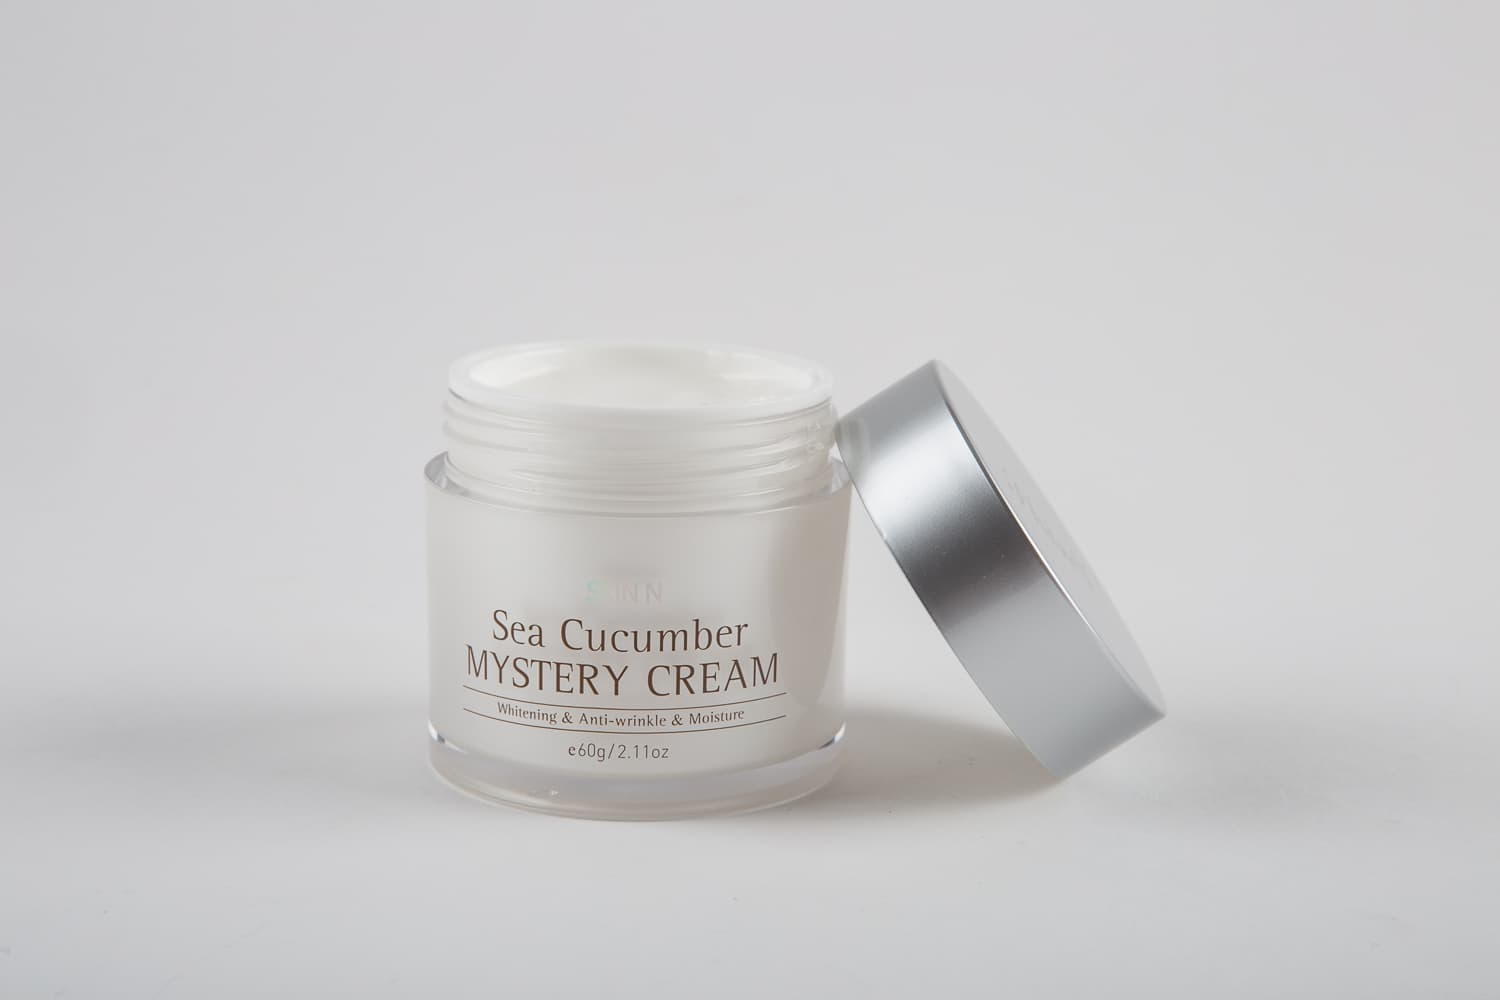 Skin N Sea Cucumber Mystery Cream